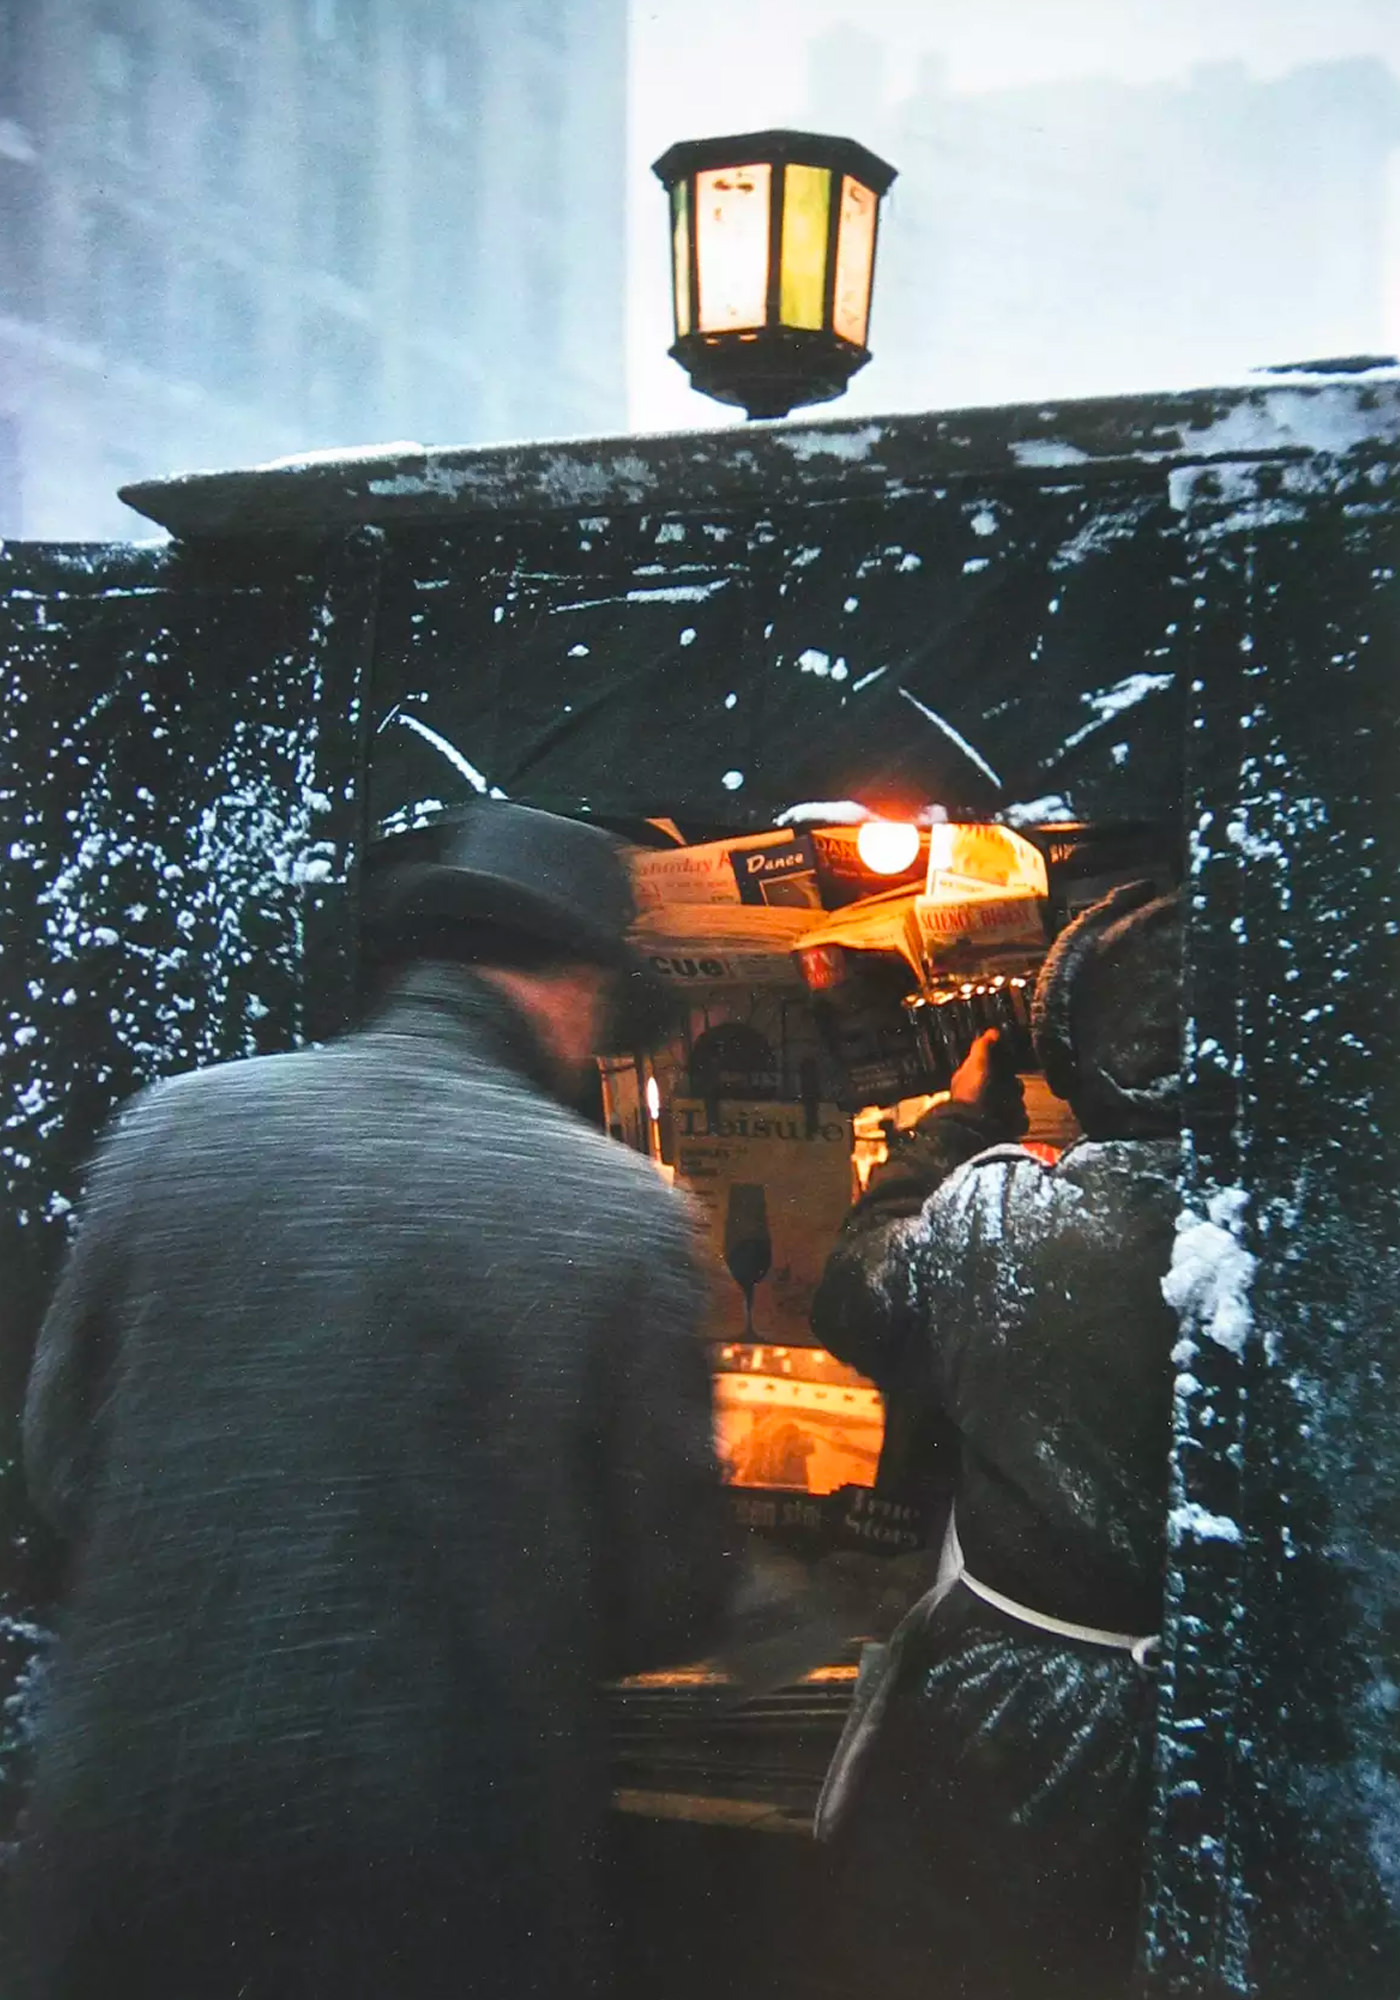 Saul Leiter Early Color Newspaper Kiosk 1955